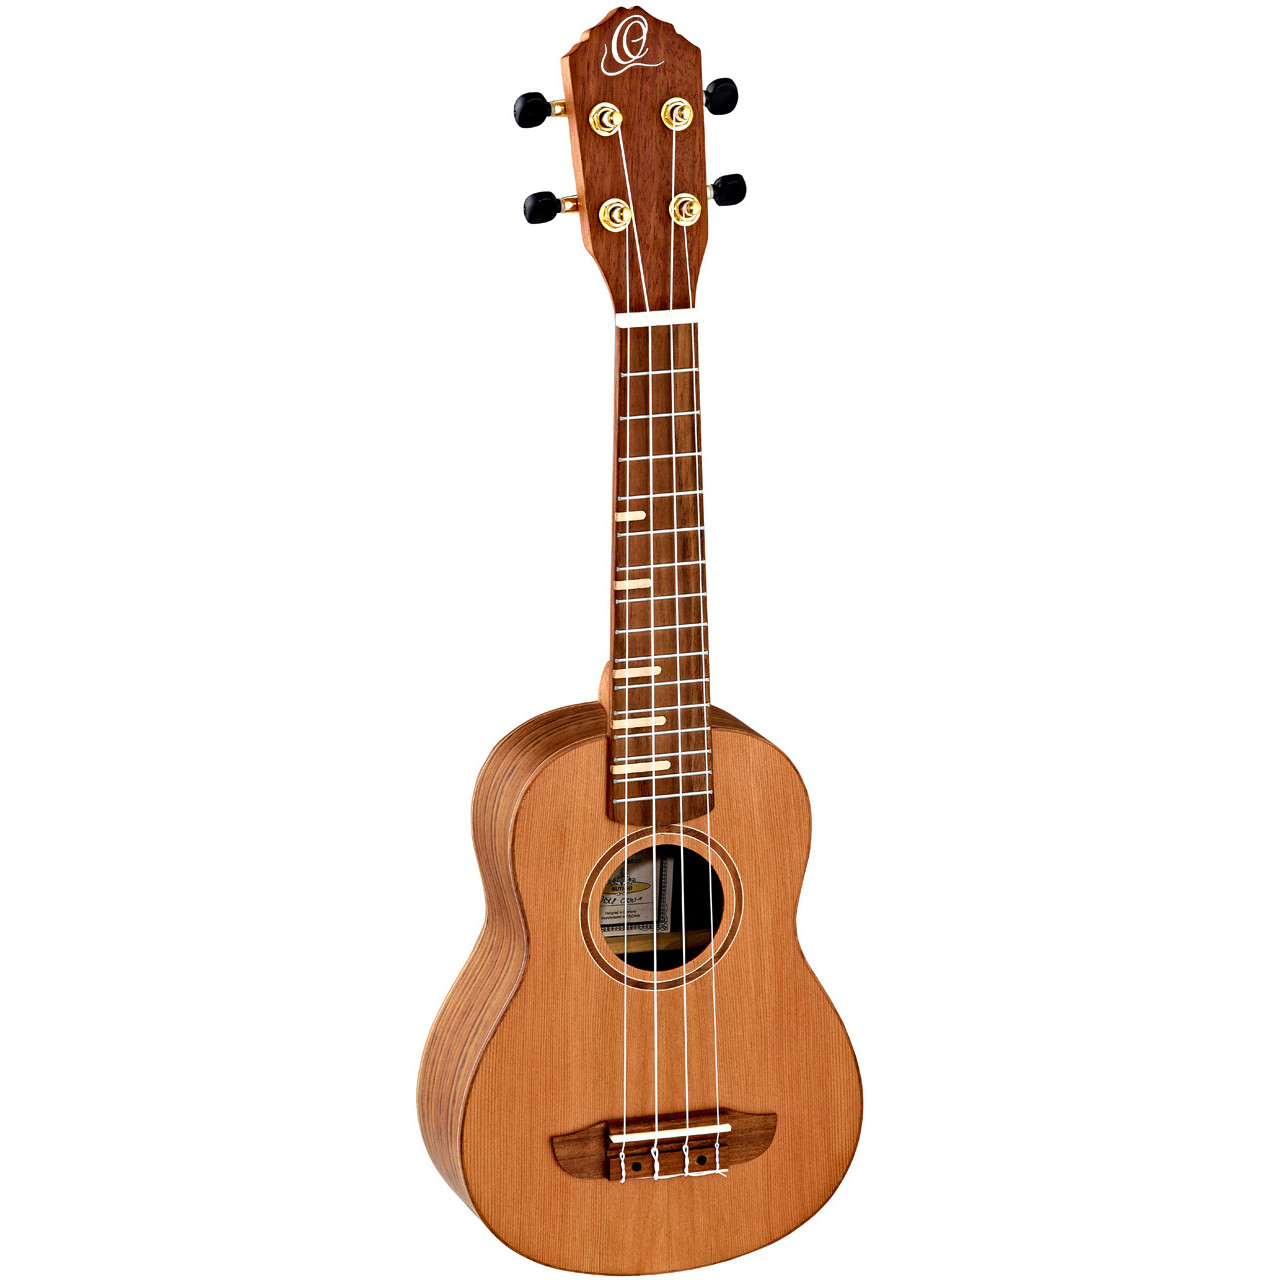 Ortega Timber series RUTI SO soprano ukulele, cedar, with bag